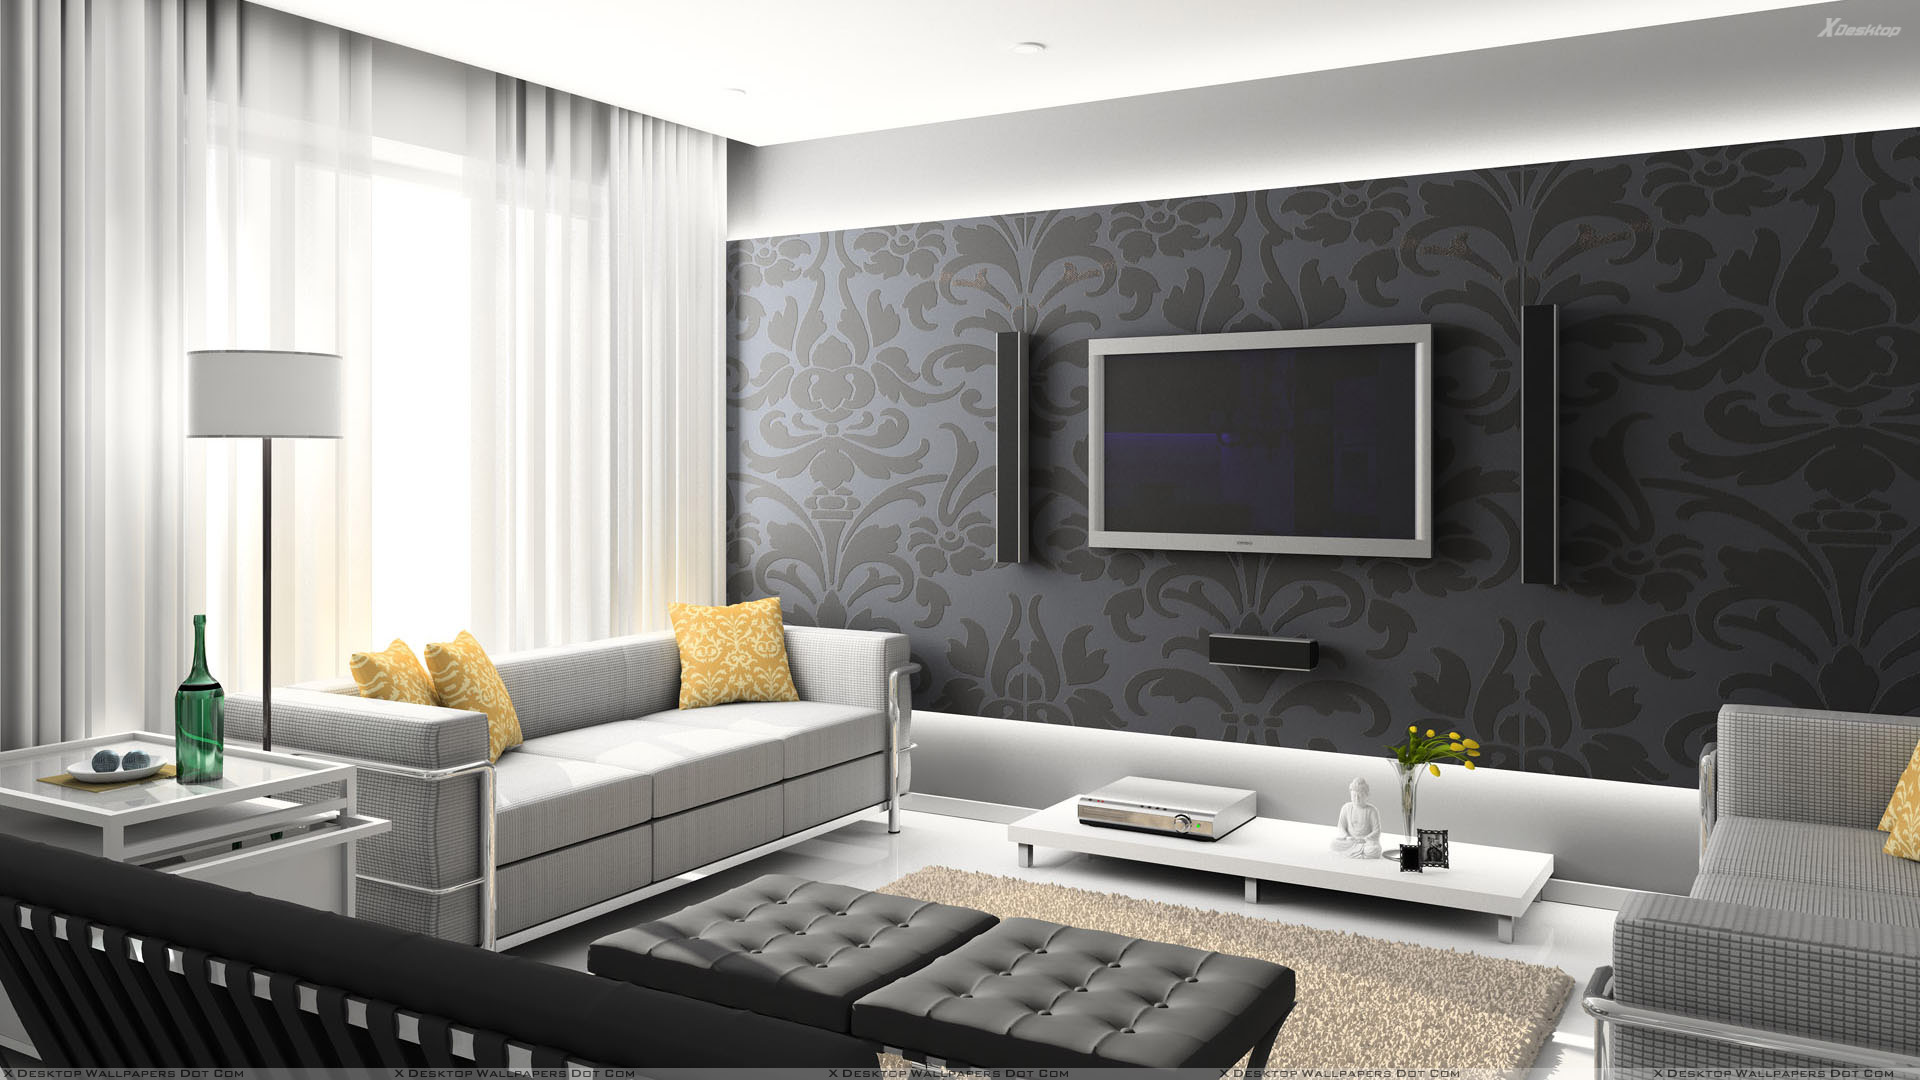 Theatre Room Wallpaper